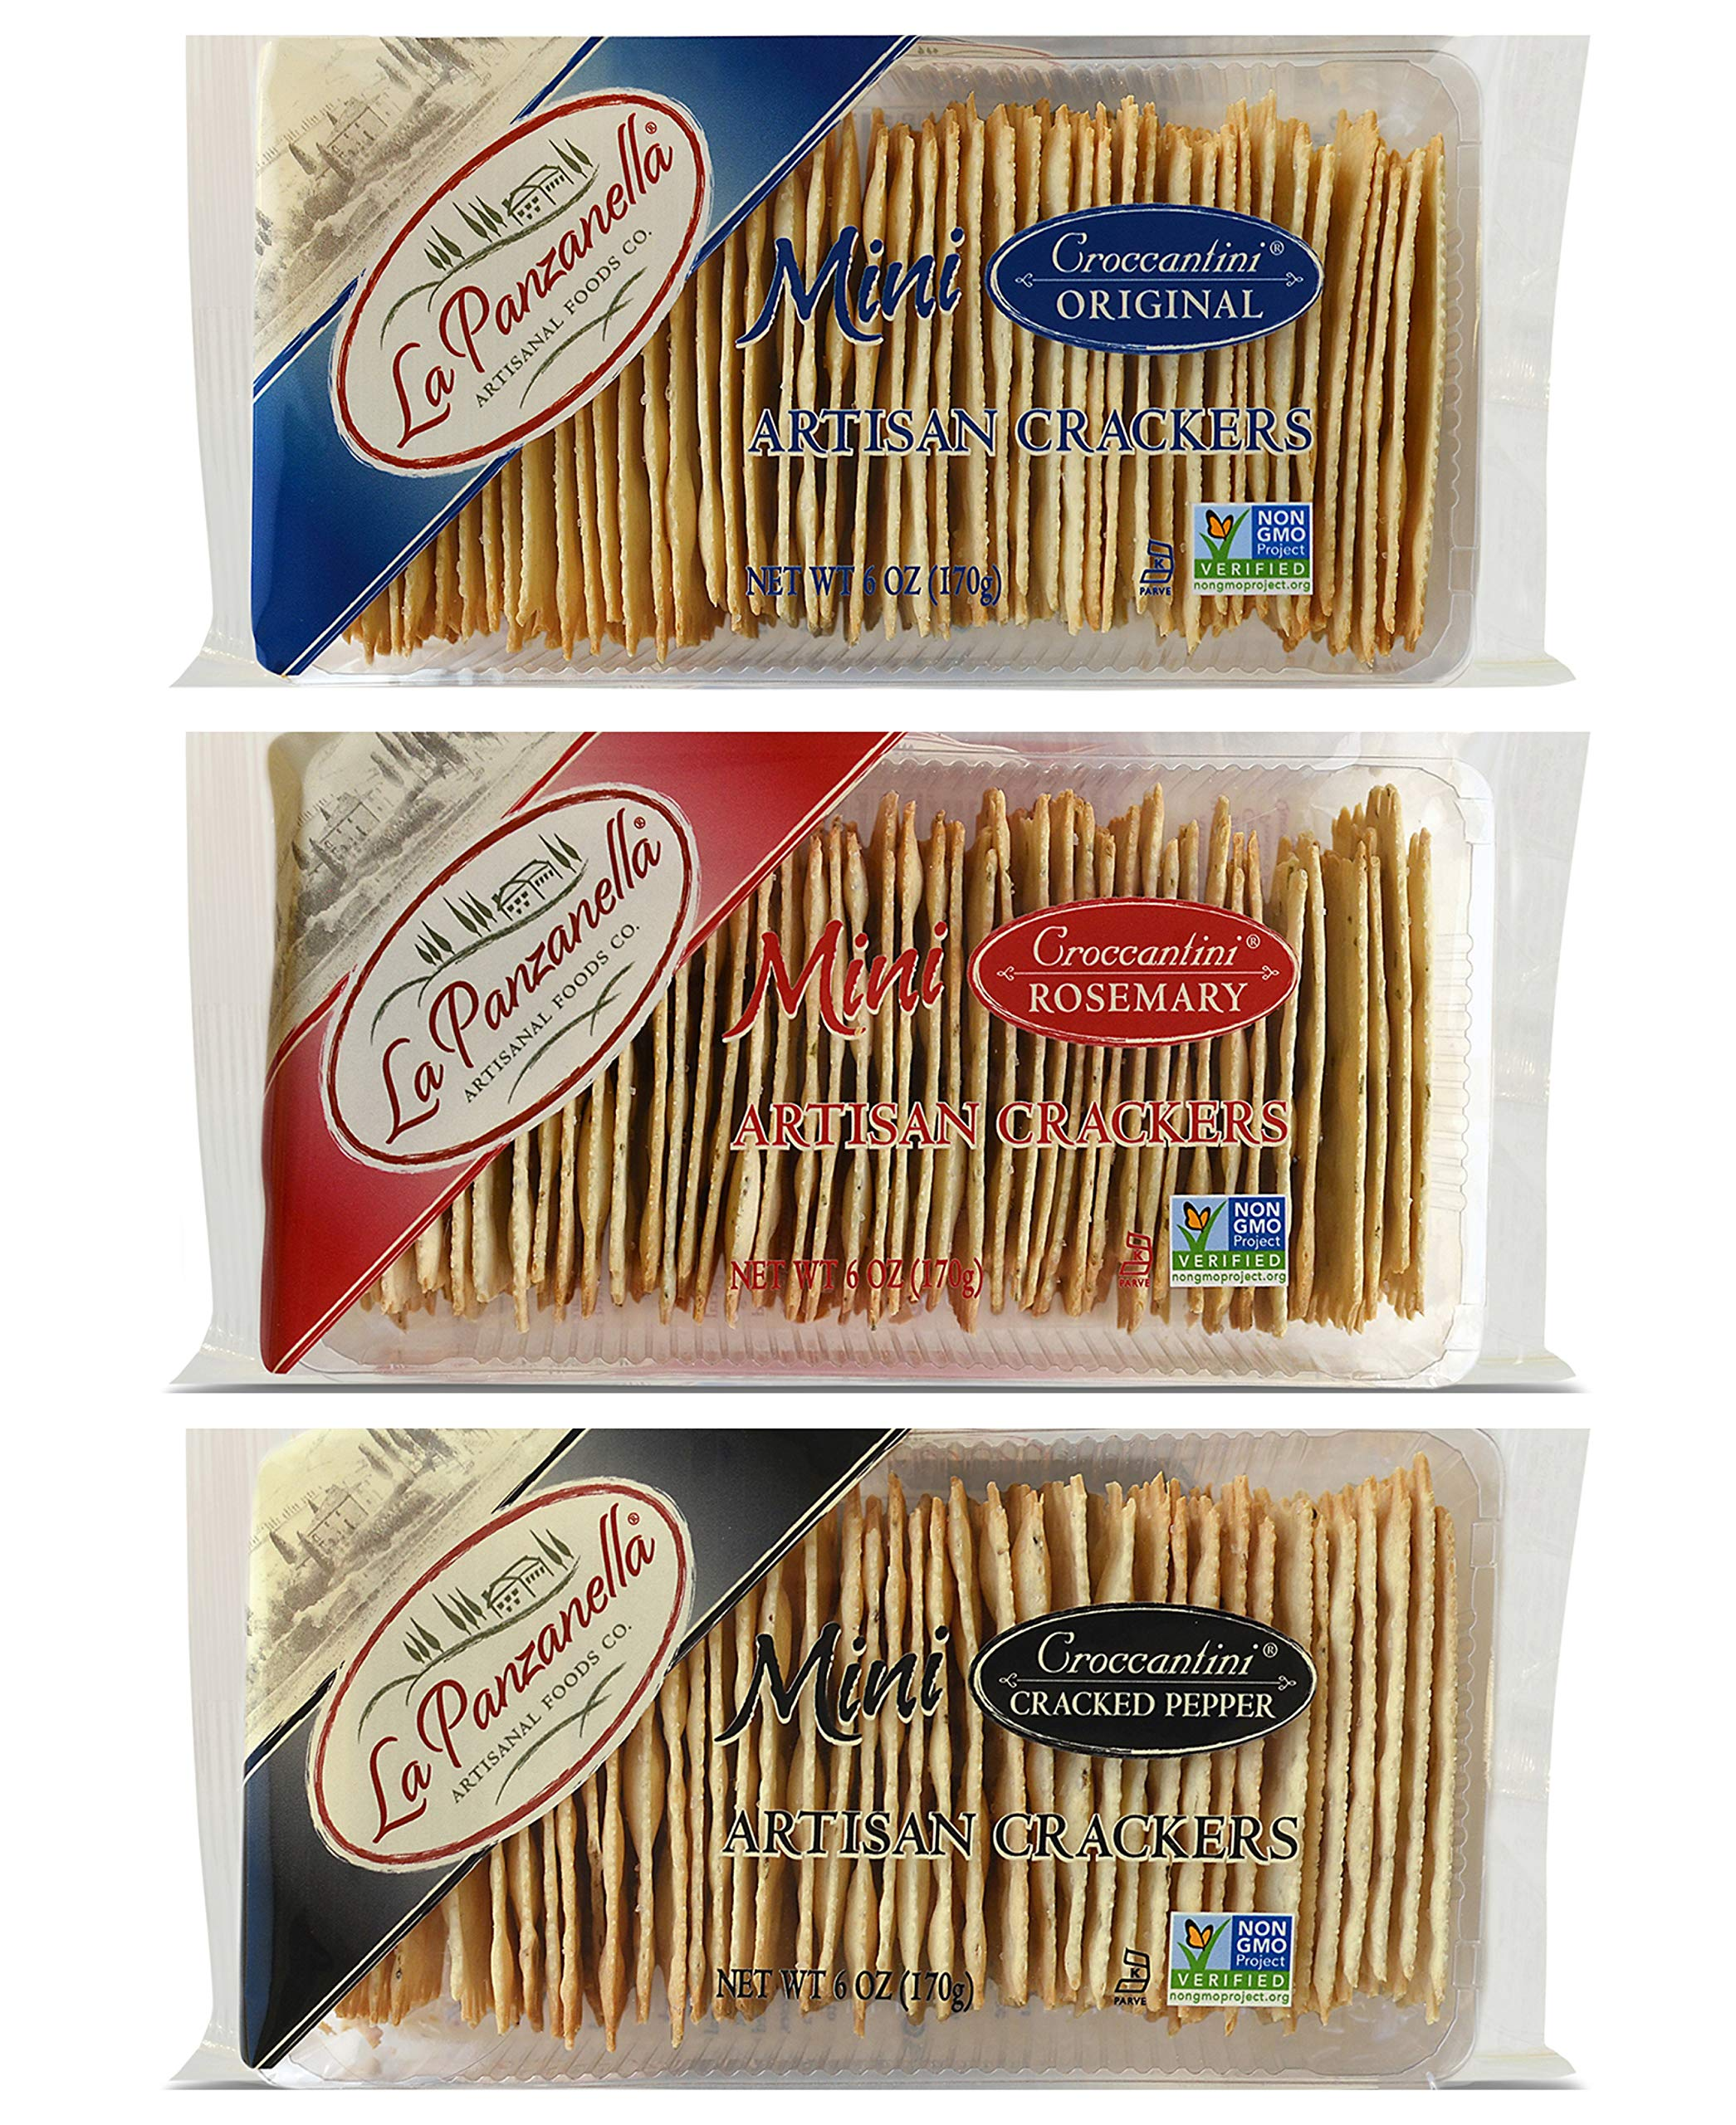 La Panzanella Mini Croccantini Artisan Snack Crackers in 3 Flavors: (1) Original, (1) Rosemary, and (1) Cracked Pepper (3 Bags Total, 6 Ounces Each)